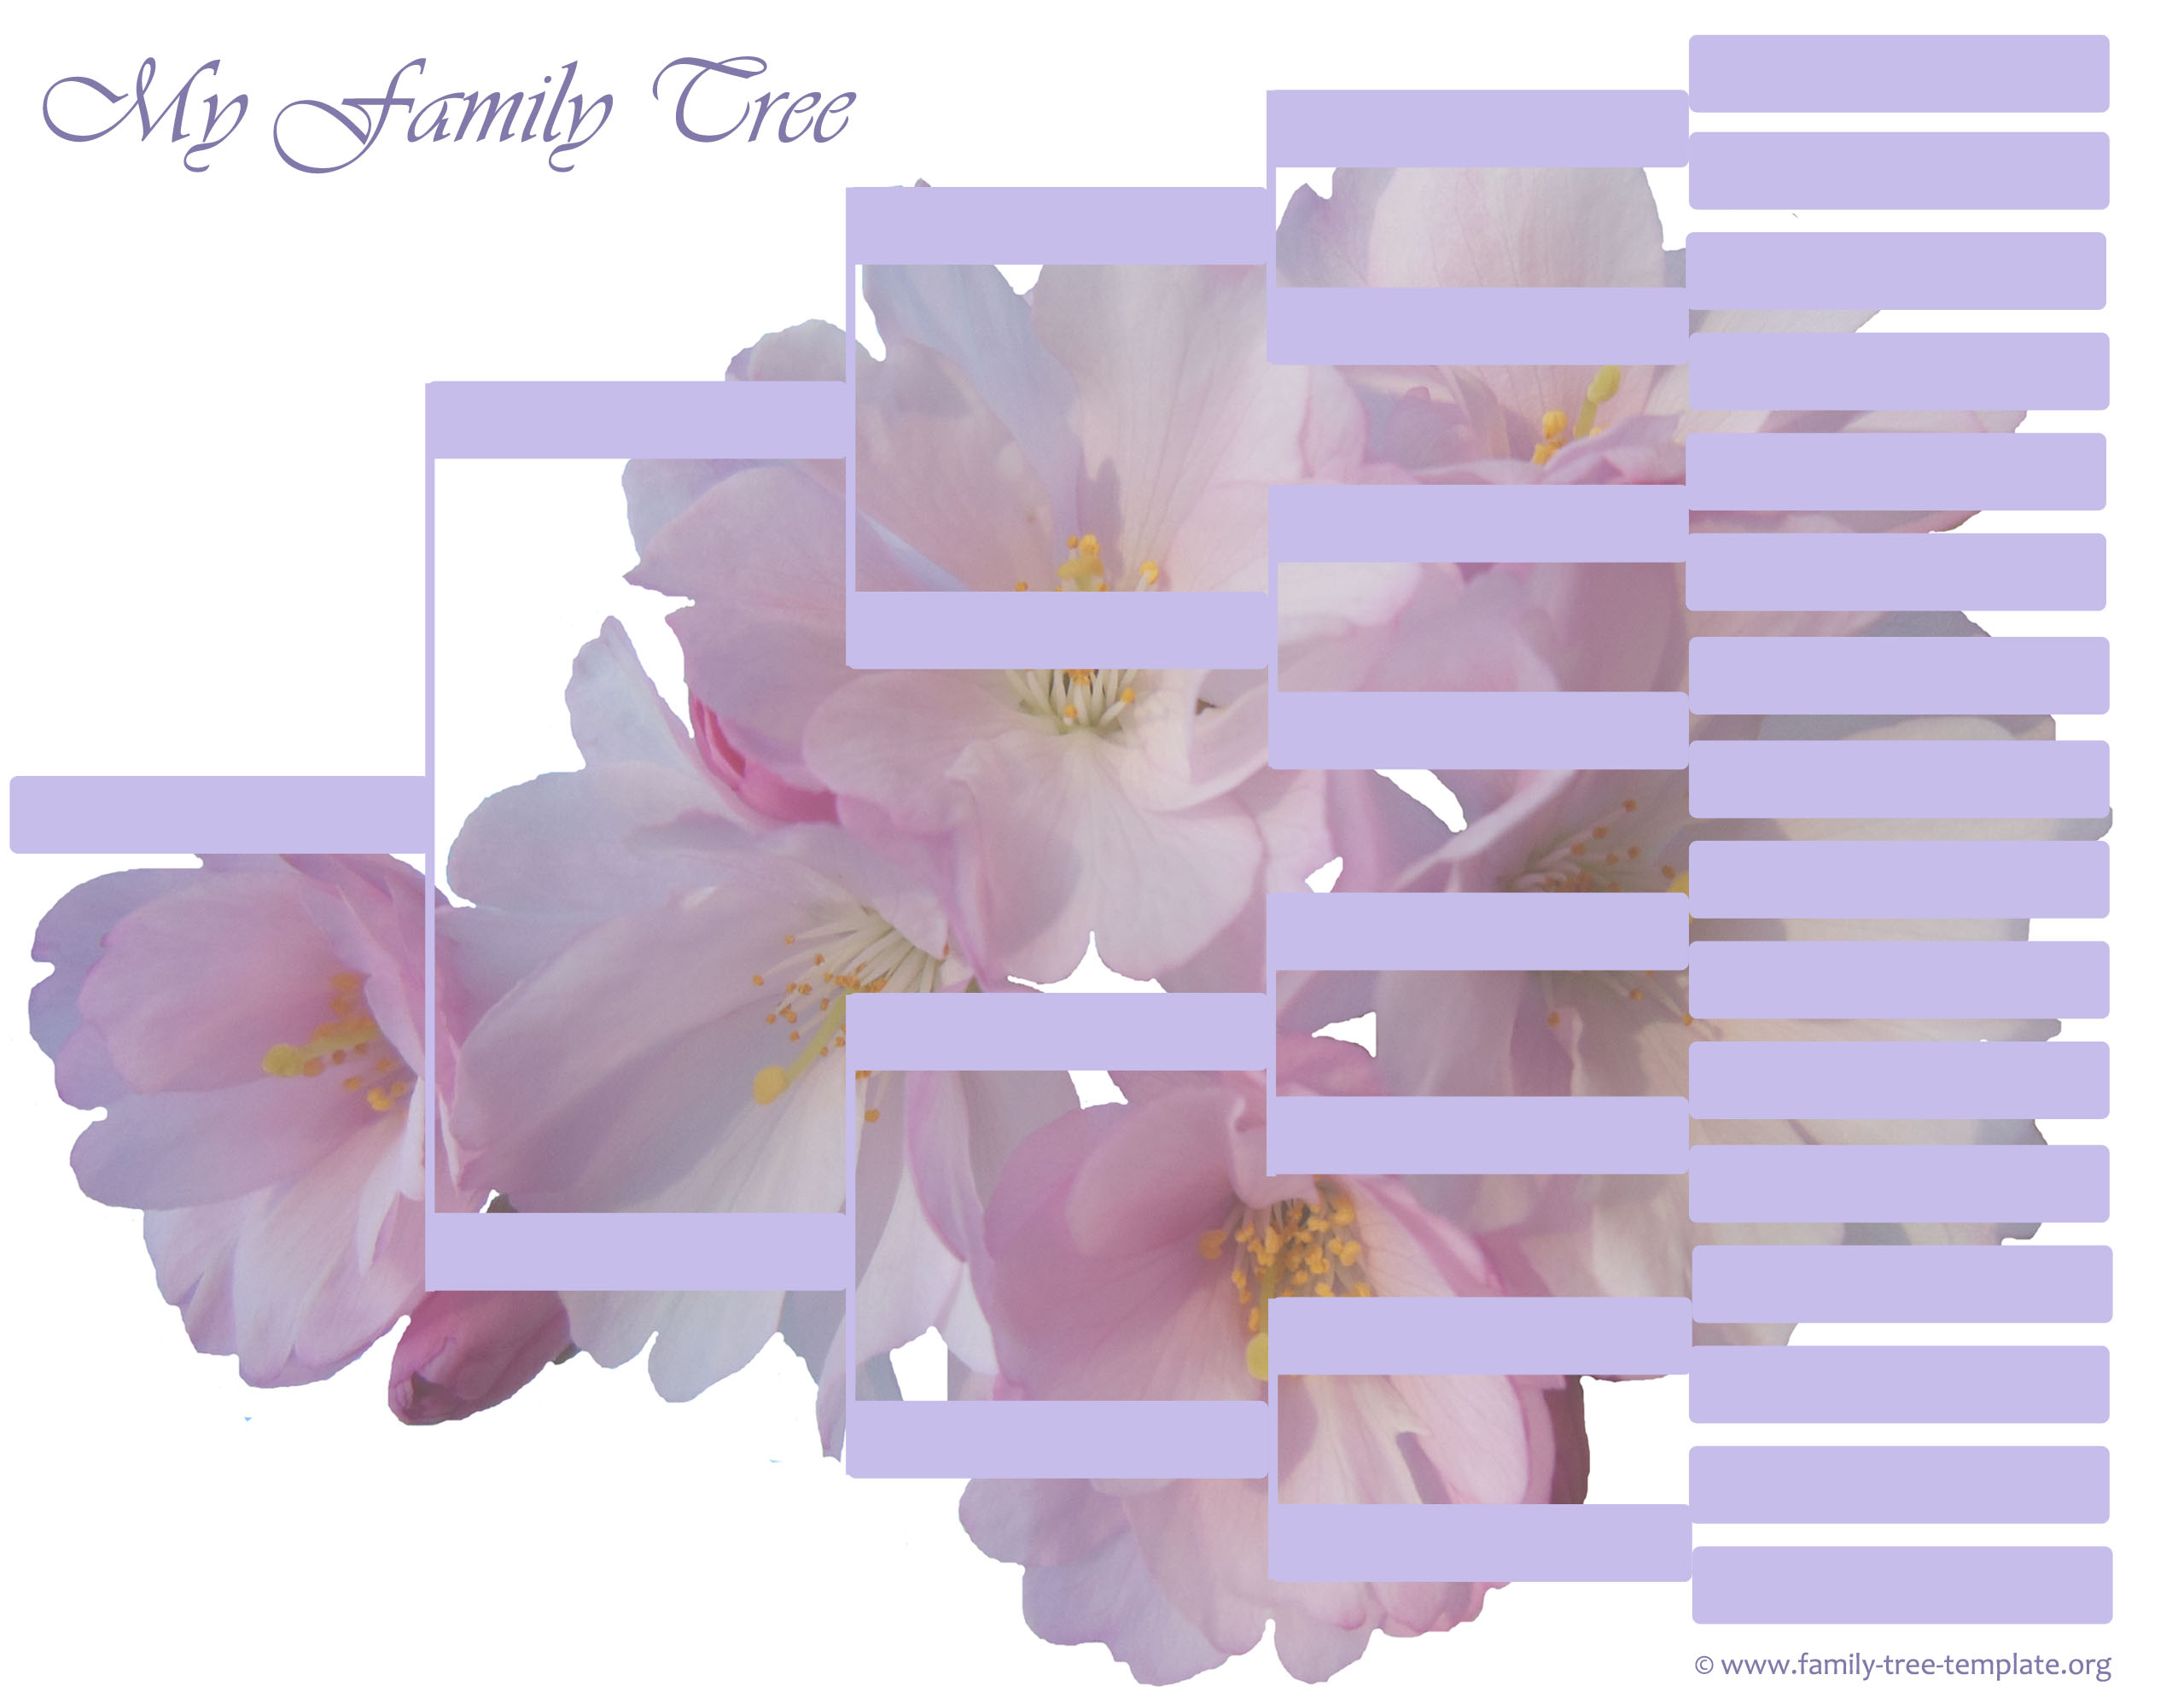 High resolution family tree to print - 5 generations.